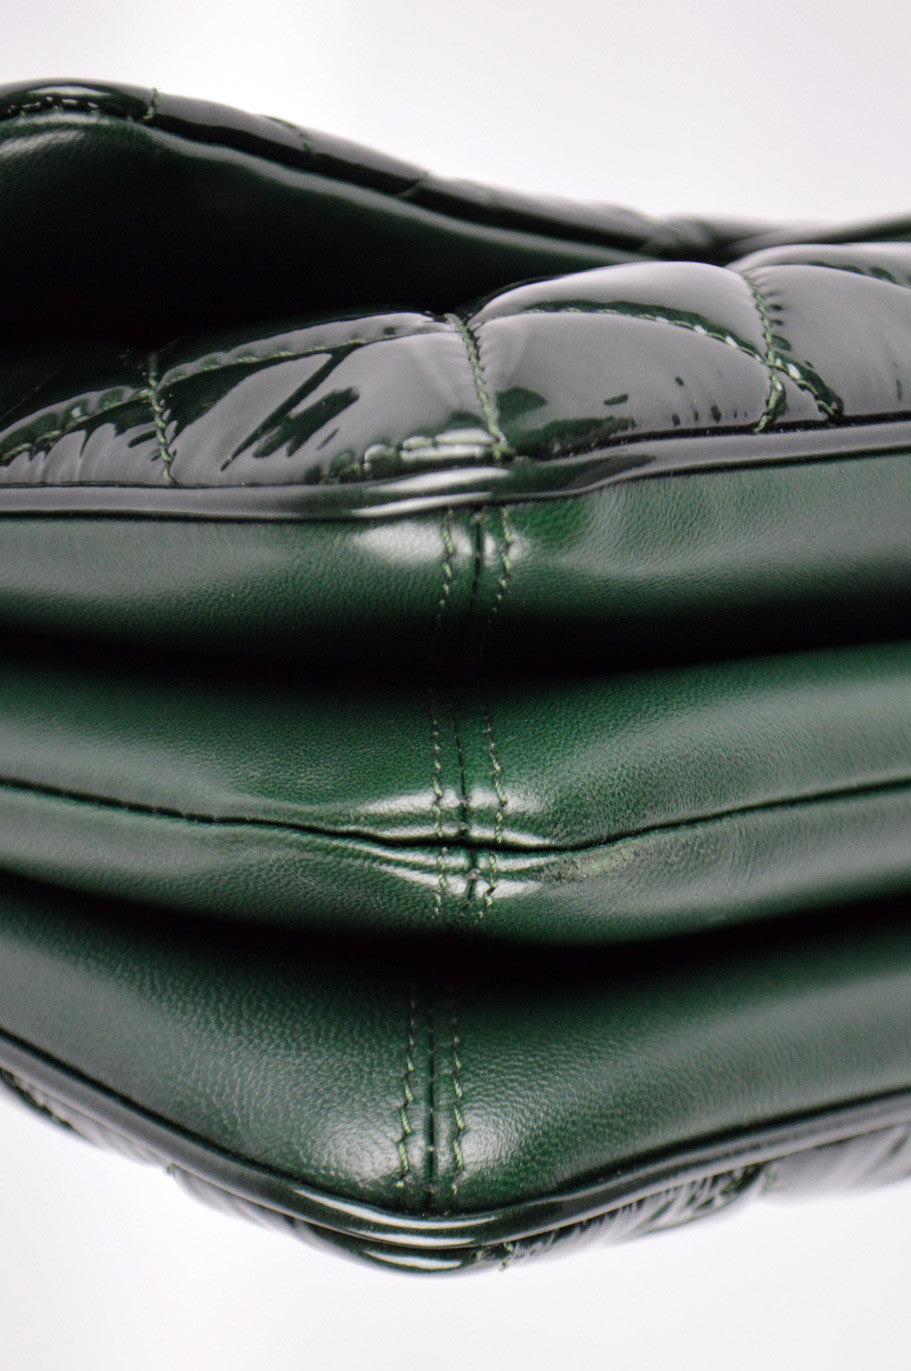 Green Patent Leather Jumbo 3 Classic Flap Bag SHW - ON LAYAWAY